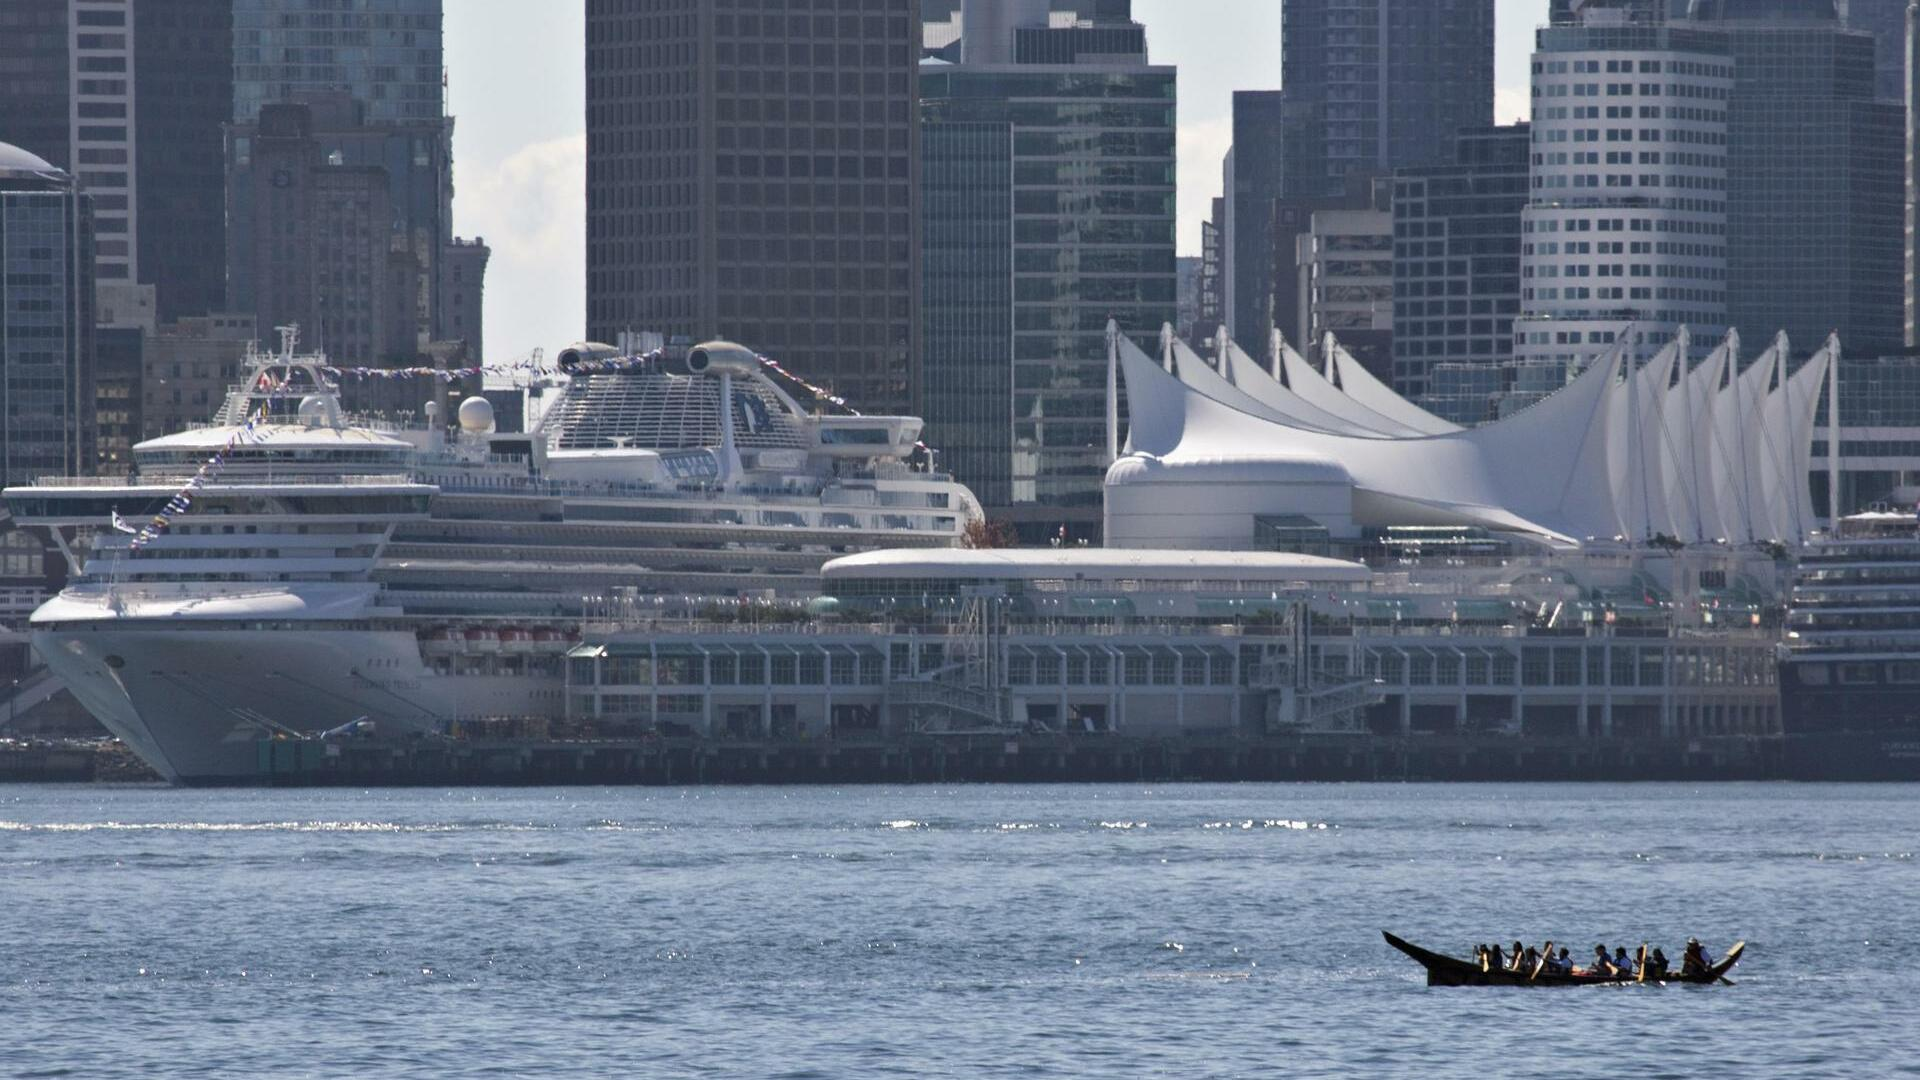 A Squamish first nation canoe paddles down the Burrard Inlet during a protest in Vancouver Quelle: REUTERS